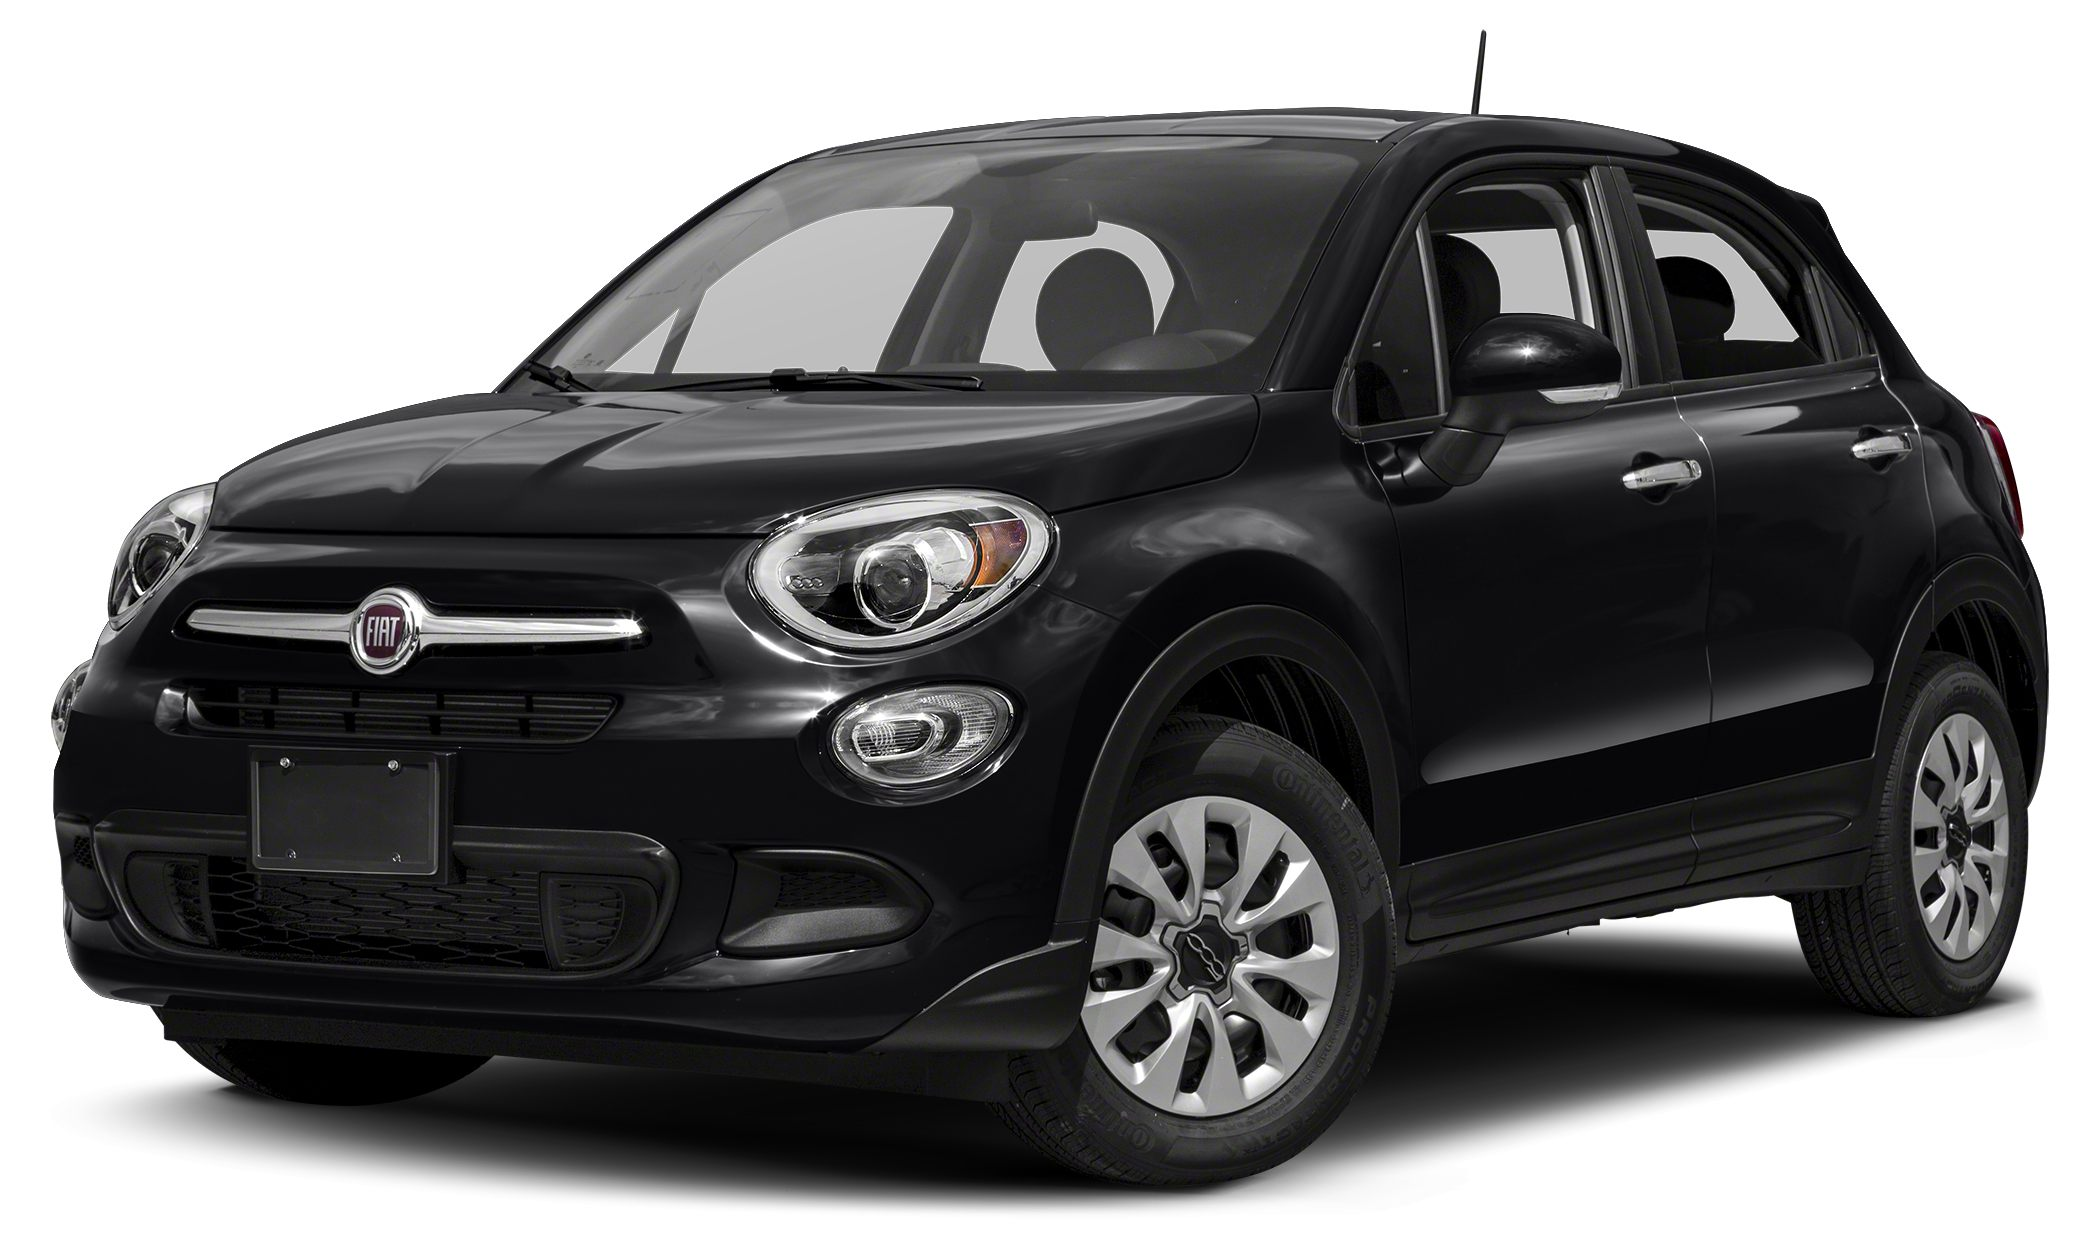 2016 FIAT 500X Easy Introducing the 2016 FIAT 500X There is no mistaking this SUV for anything bu